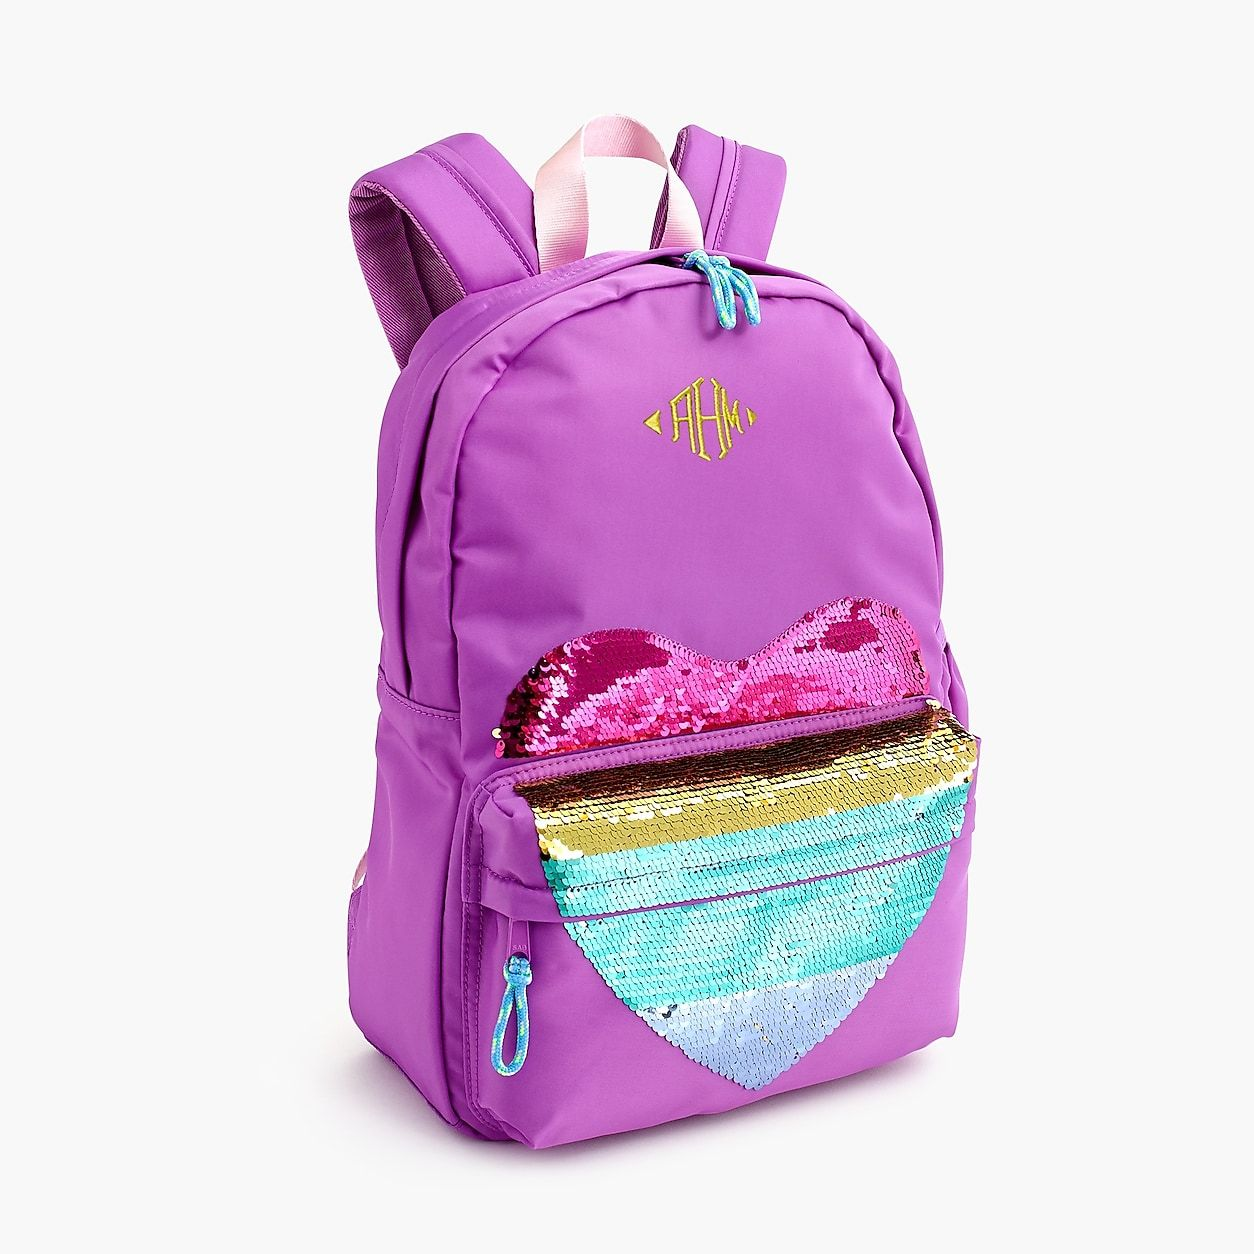 fb3164e38 crewcuts Backpack With Reversible-Sequin Heart | Products | Girl ...